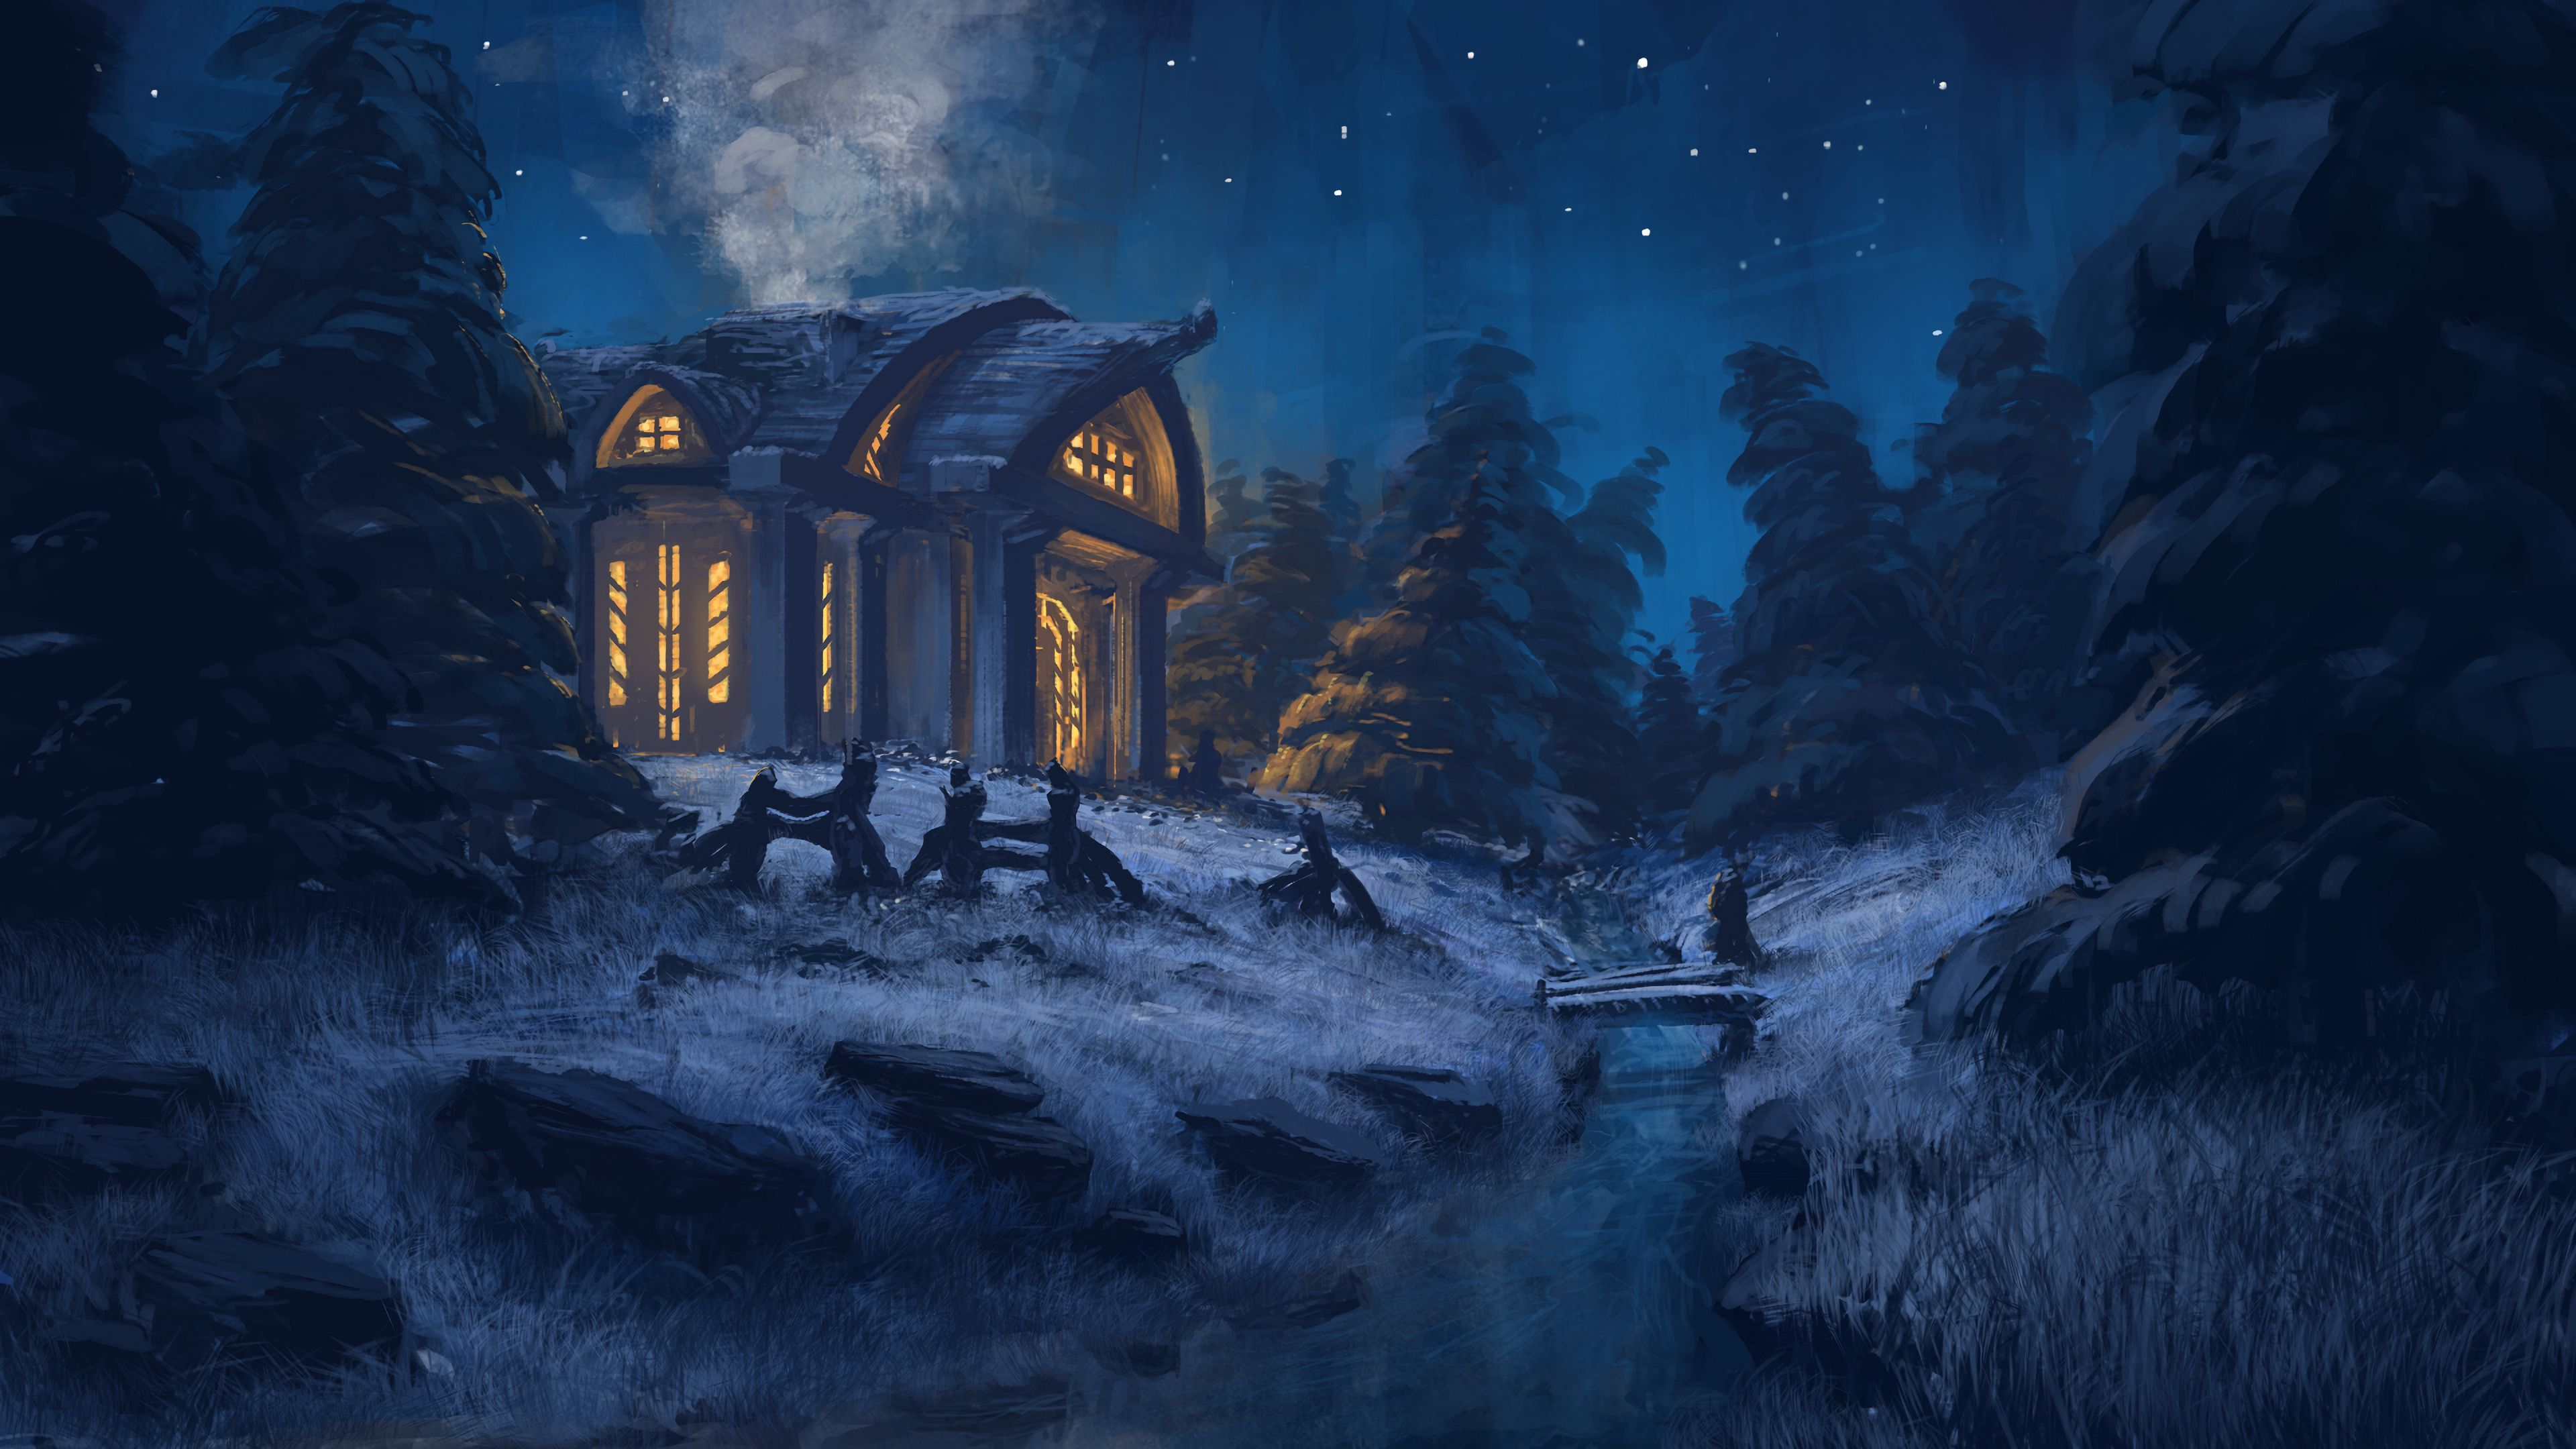 150469 download wallpaper Night, Art, Smoke, House screensavers and pictures for free